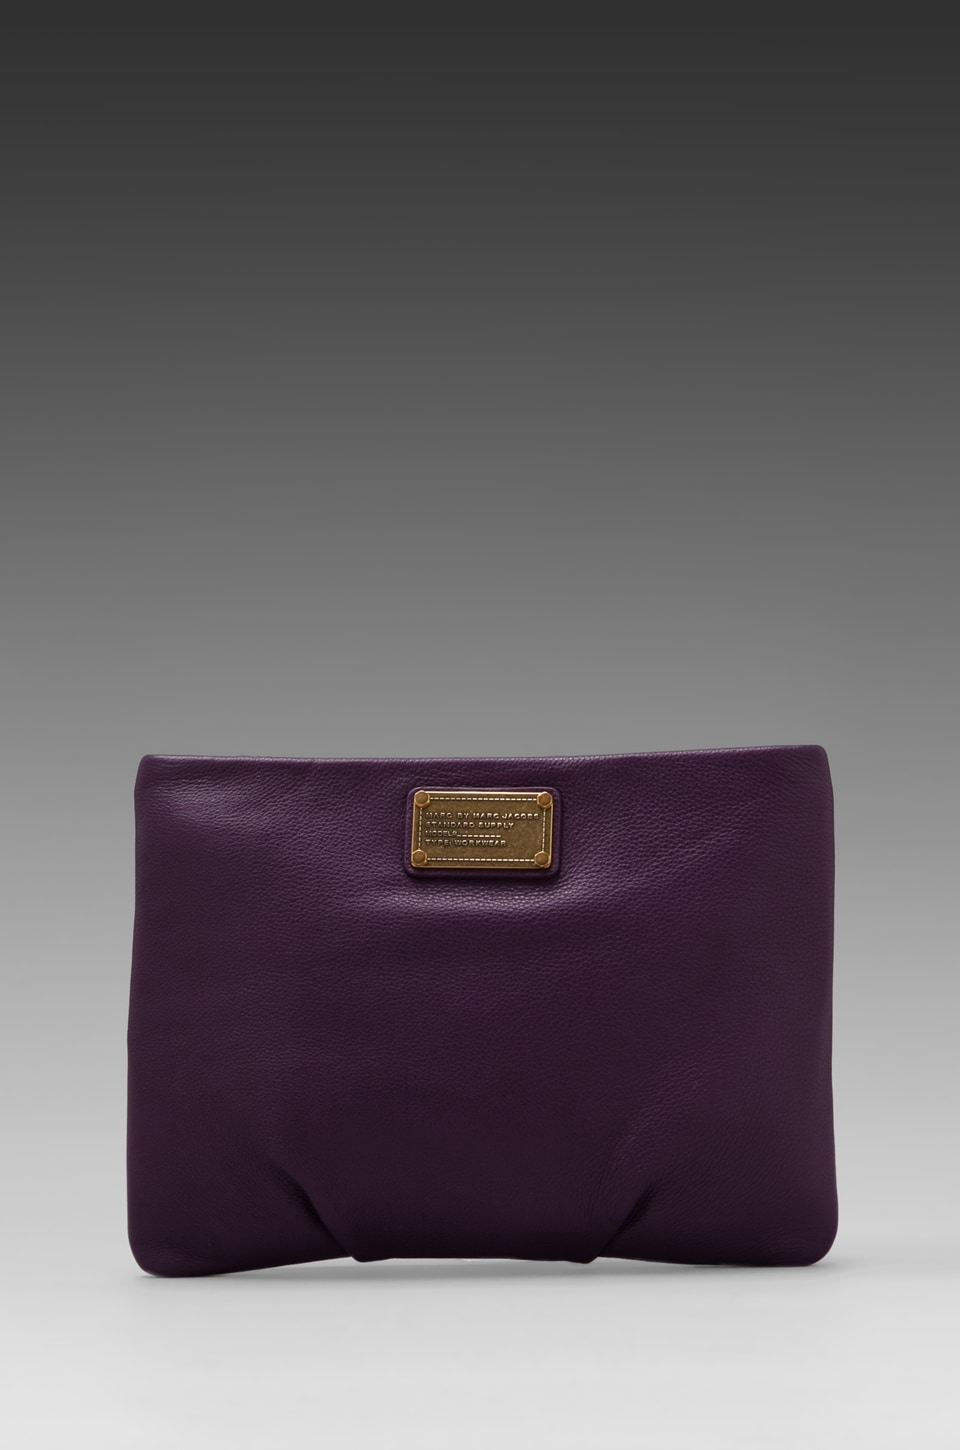 Marc by Marc Jacobs Classic Q Tablet Wristlet in Pansy Purple